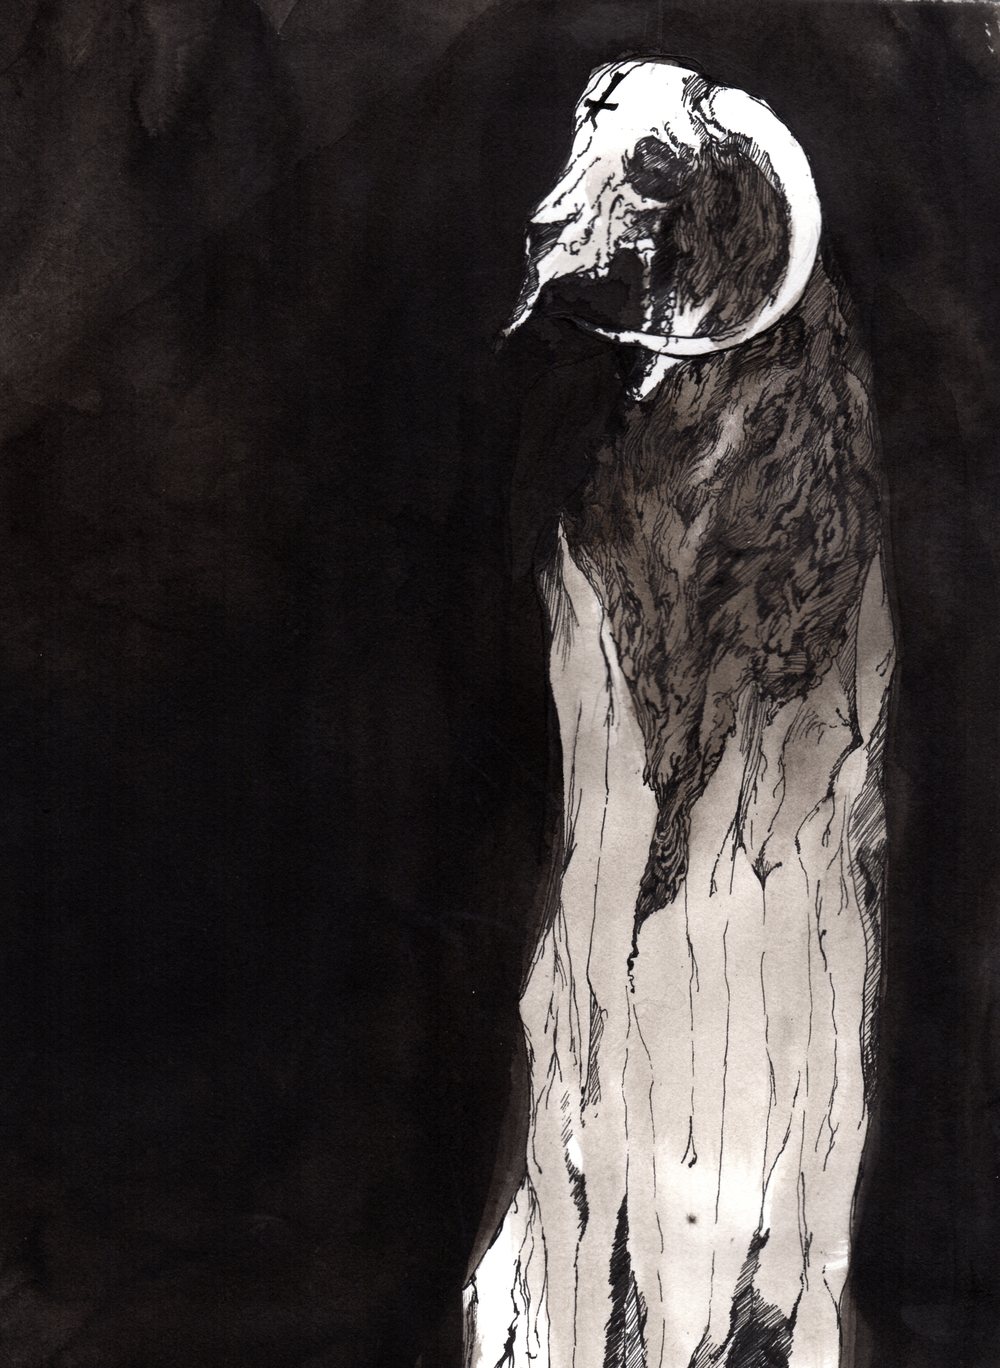 Invocation of the Black One  . 2013. 12 x 15 inches. Ink wash on paper.